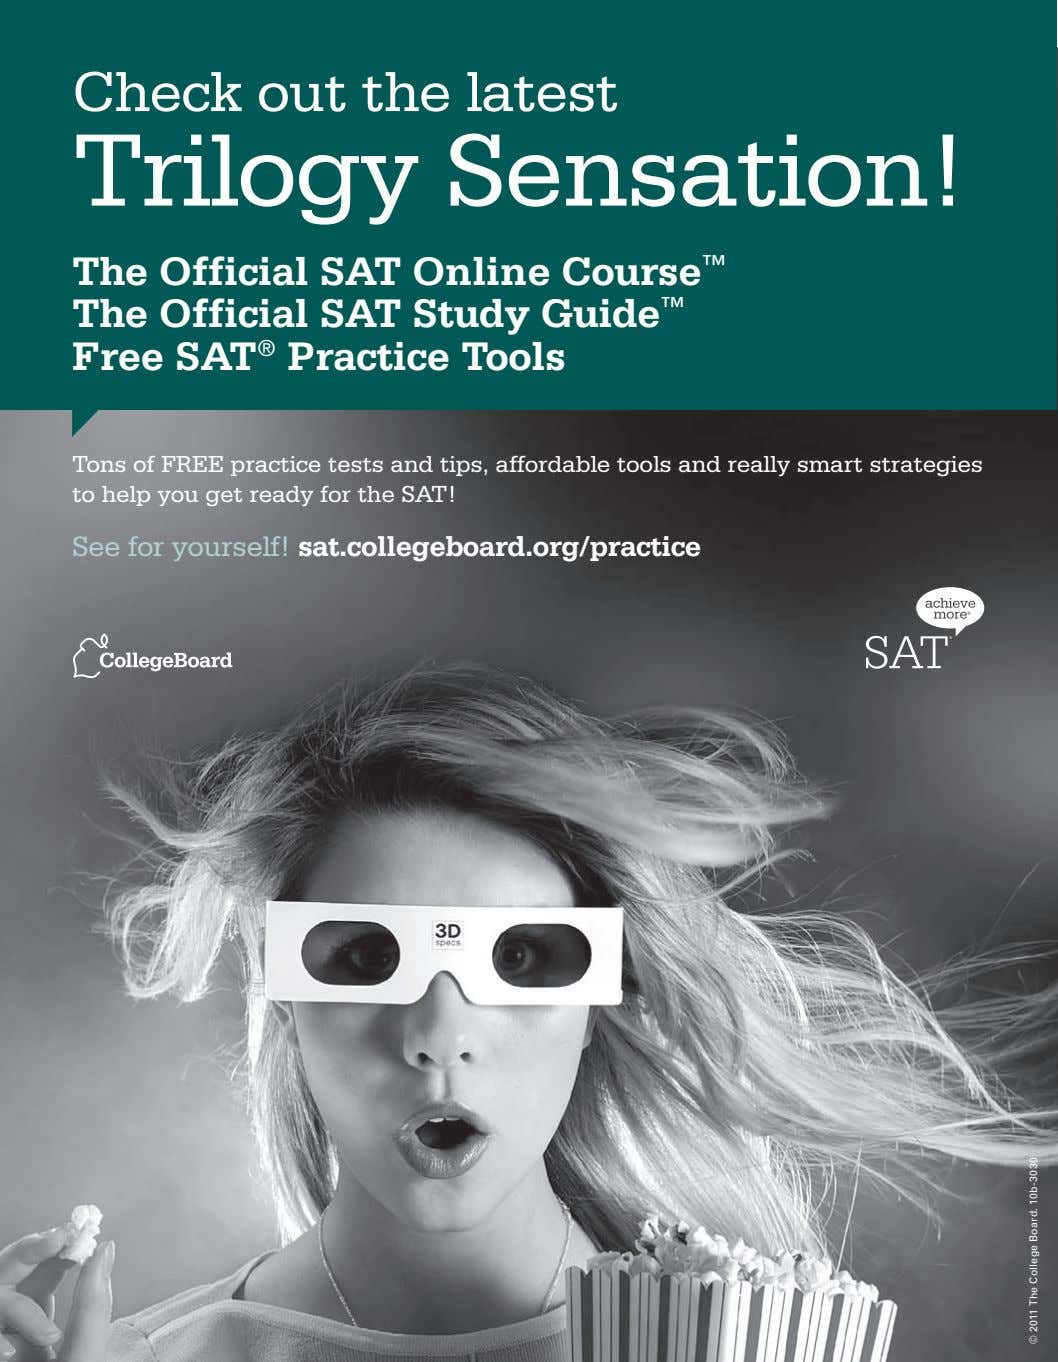 Check out the latest Trilogy Sensation! The Official SAT Online Course ™ The Official SAT